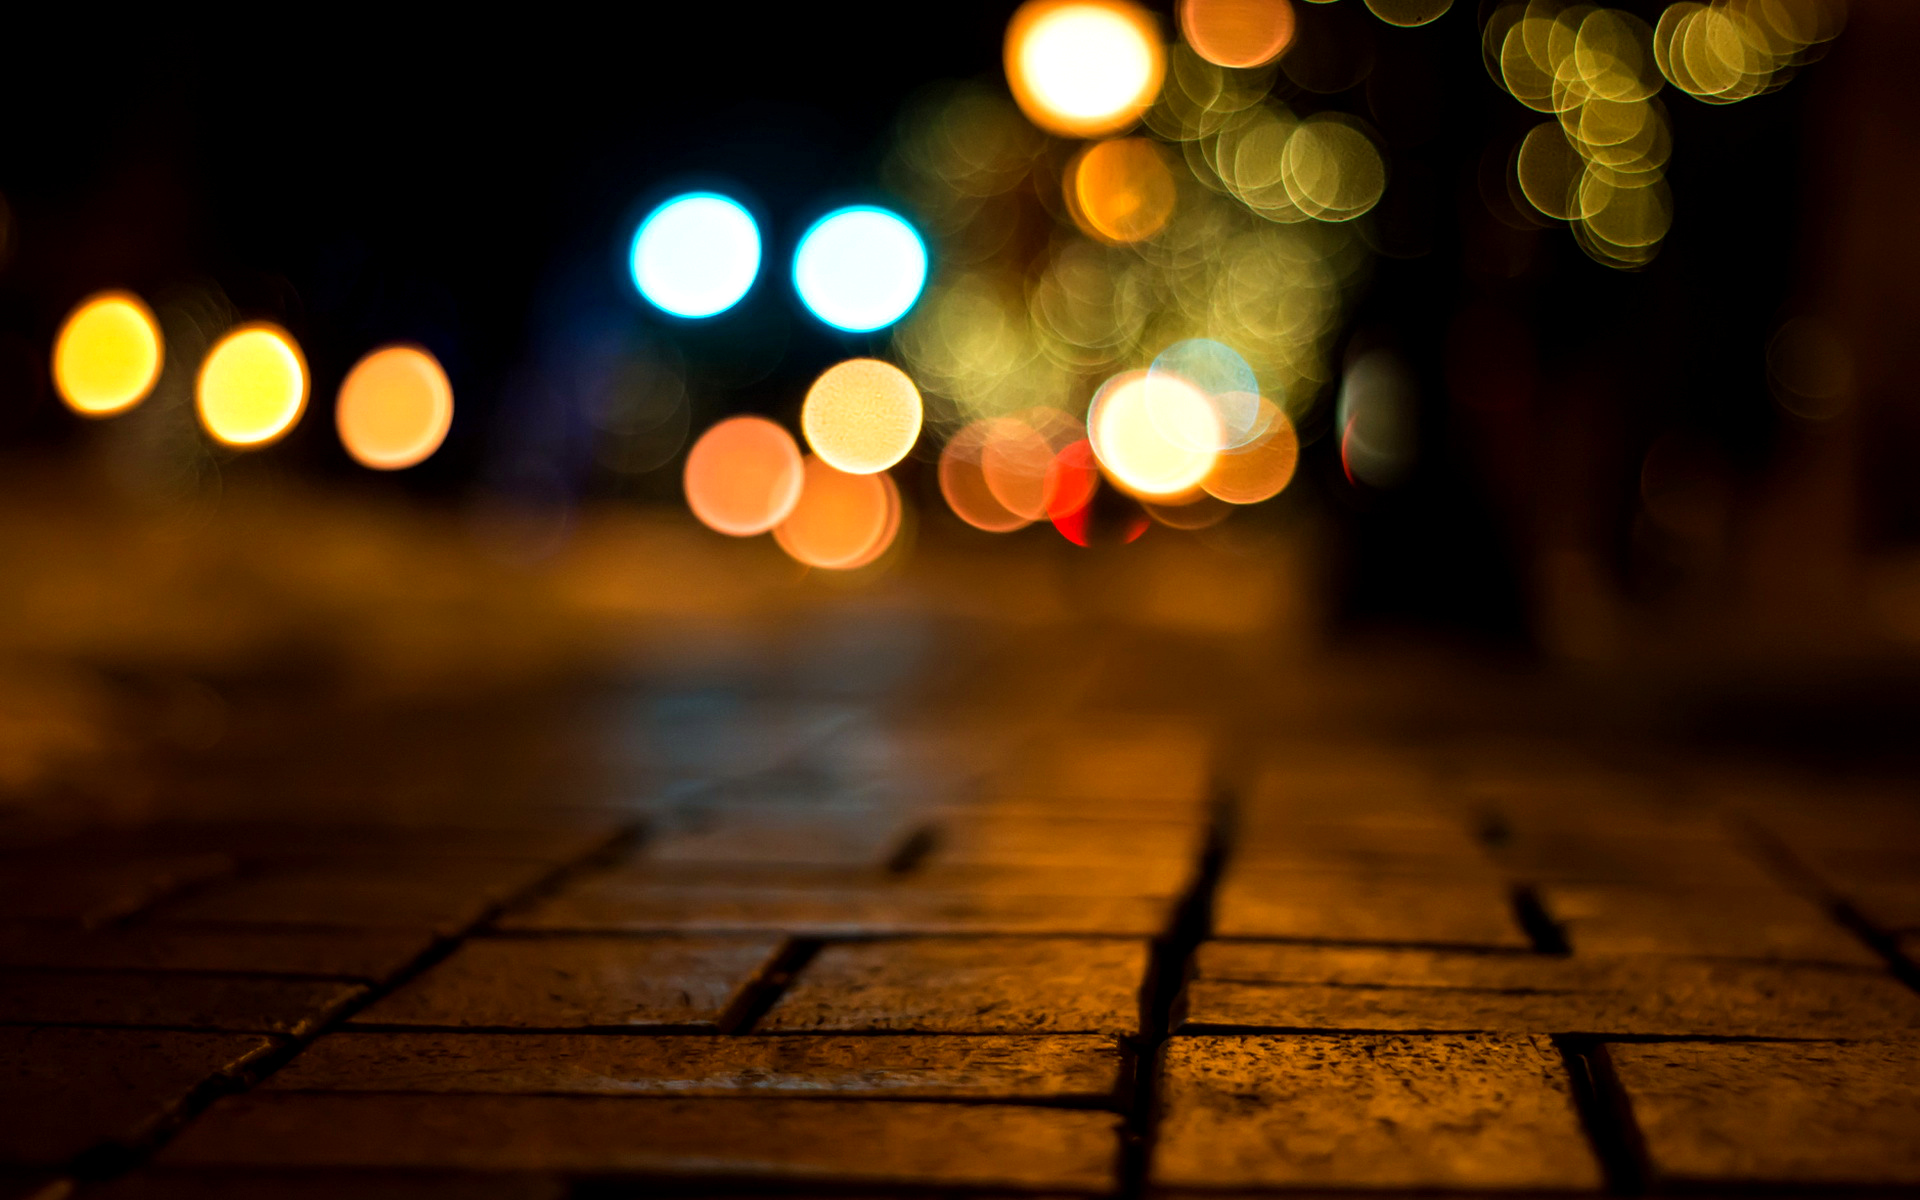 Hd wallpaper bokeh - Artistic Bokeh Wallpaper